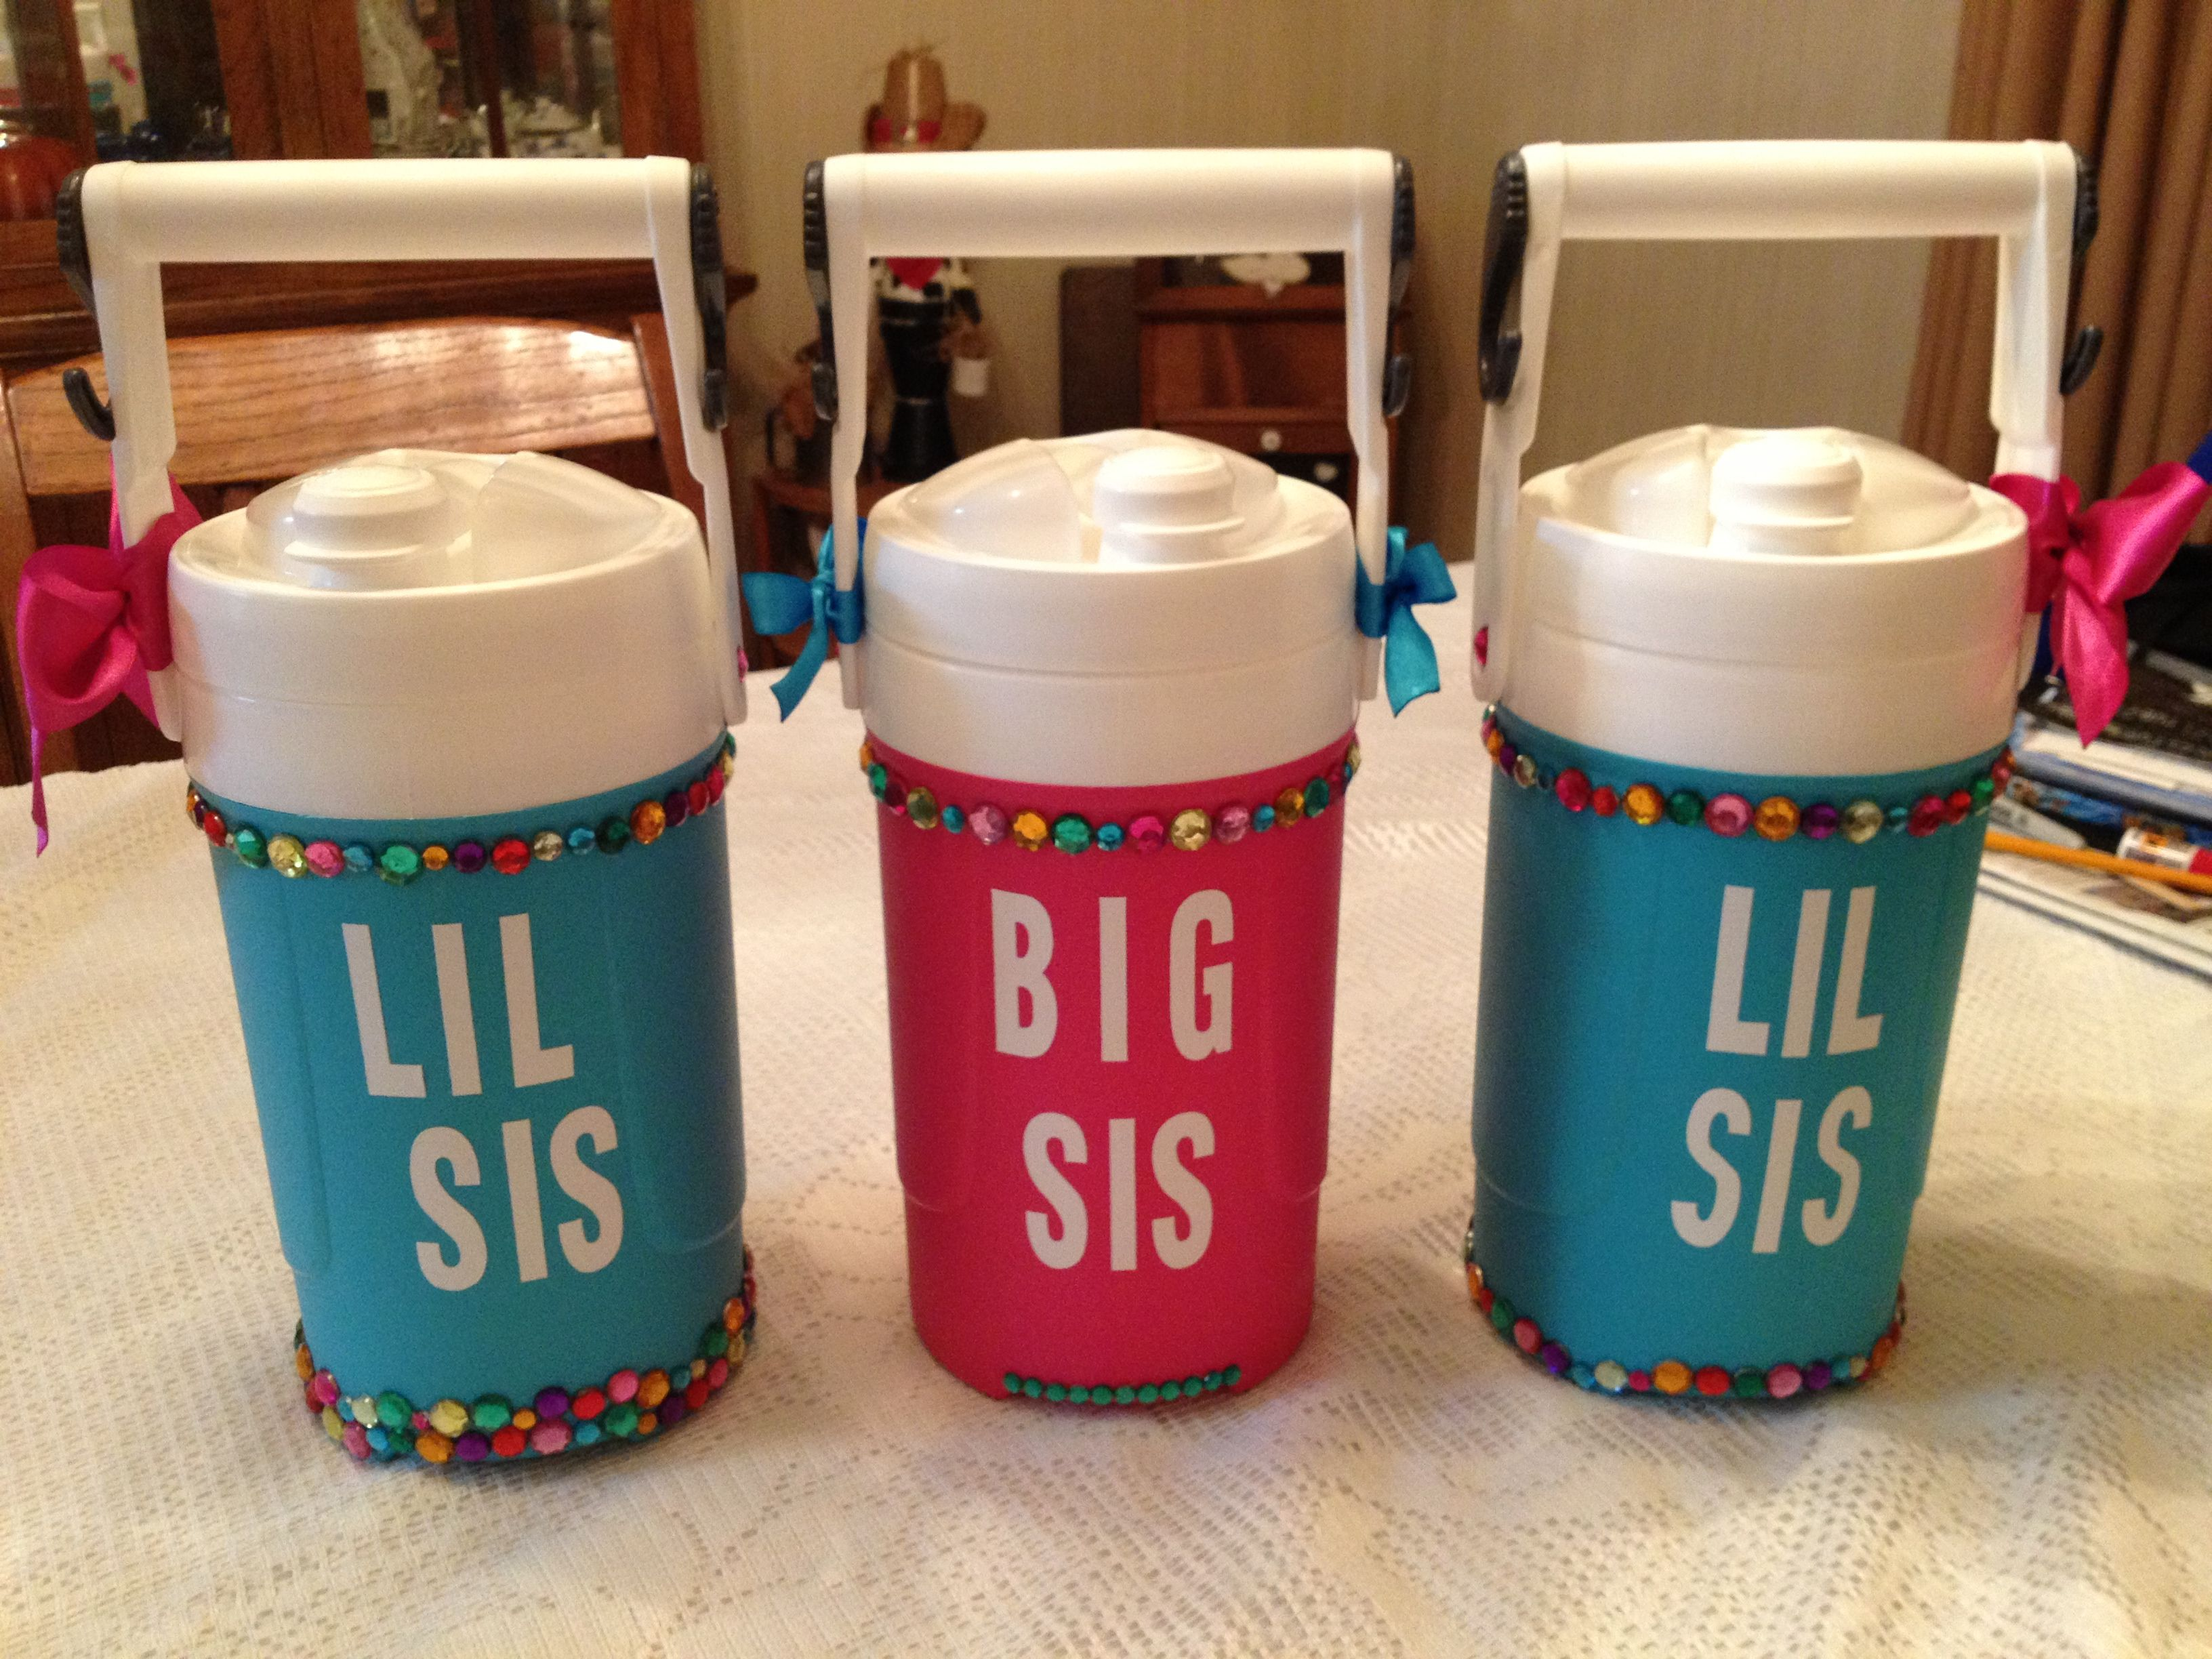 Pin By Marie Carmon On Cheer Big Sis Lil Sis Gifts Lil Sis Gift Cheer Gifts